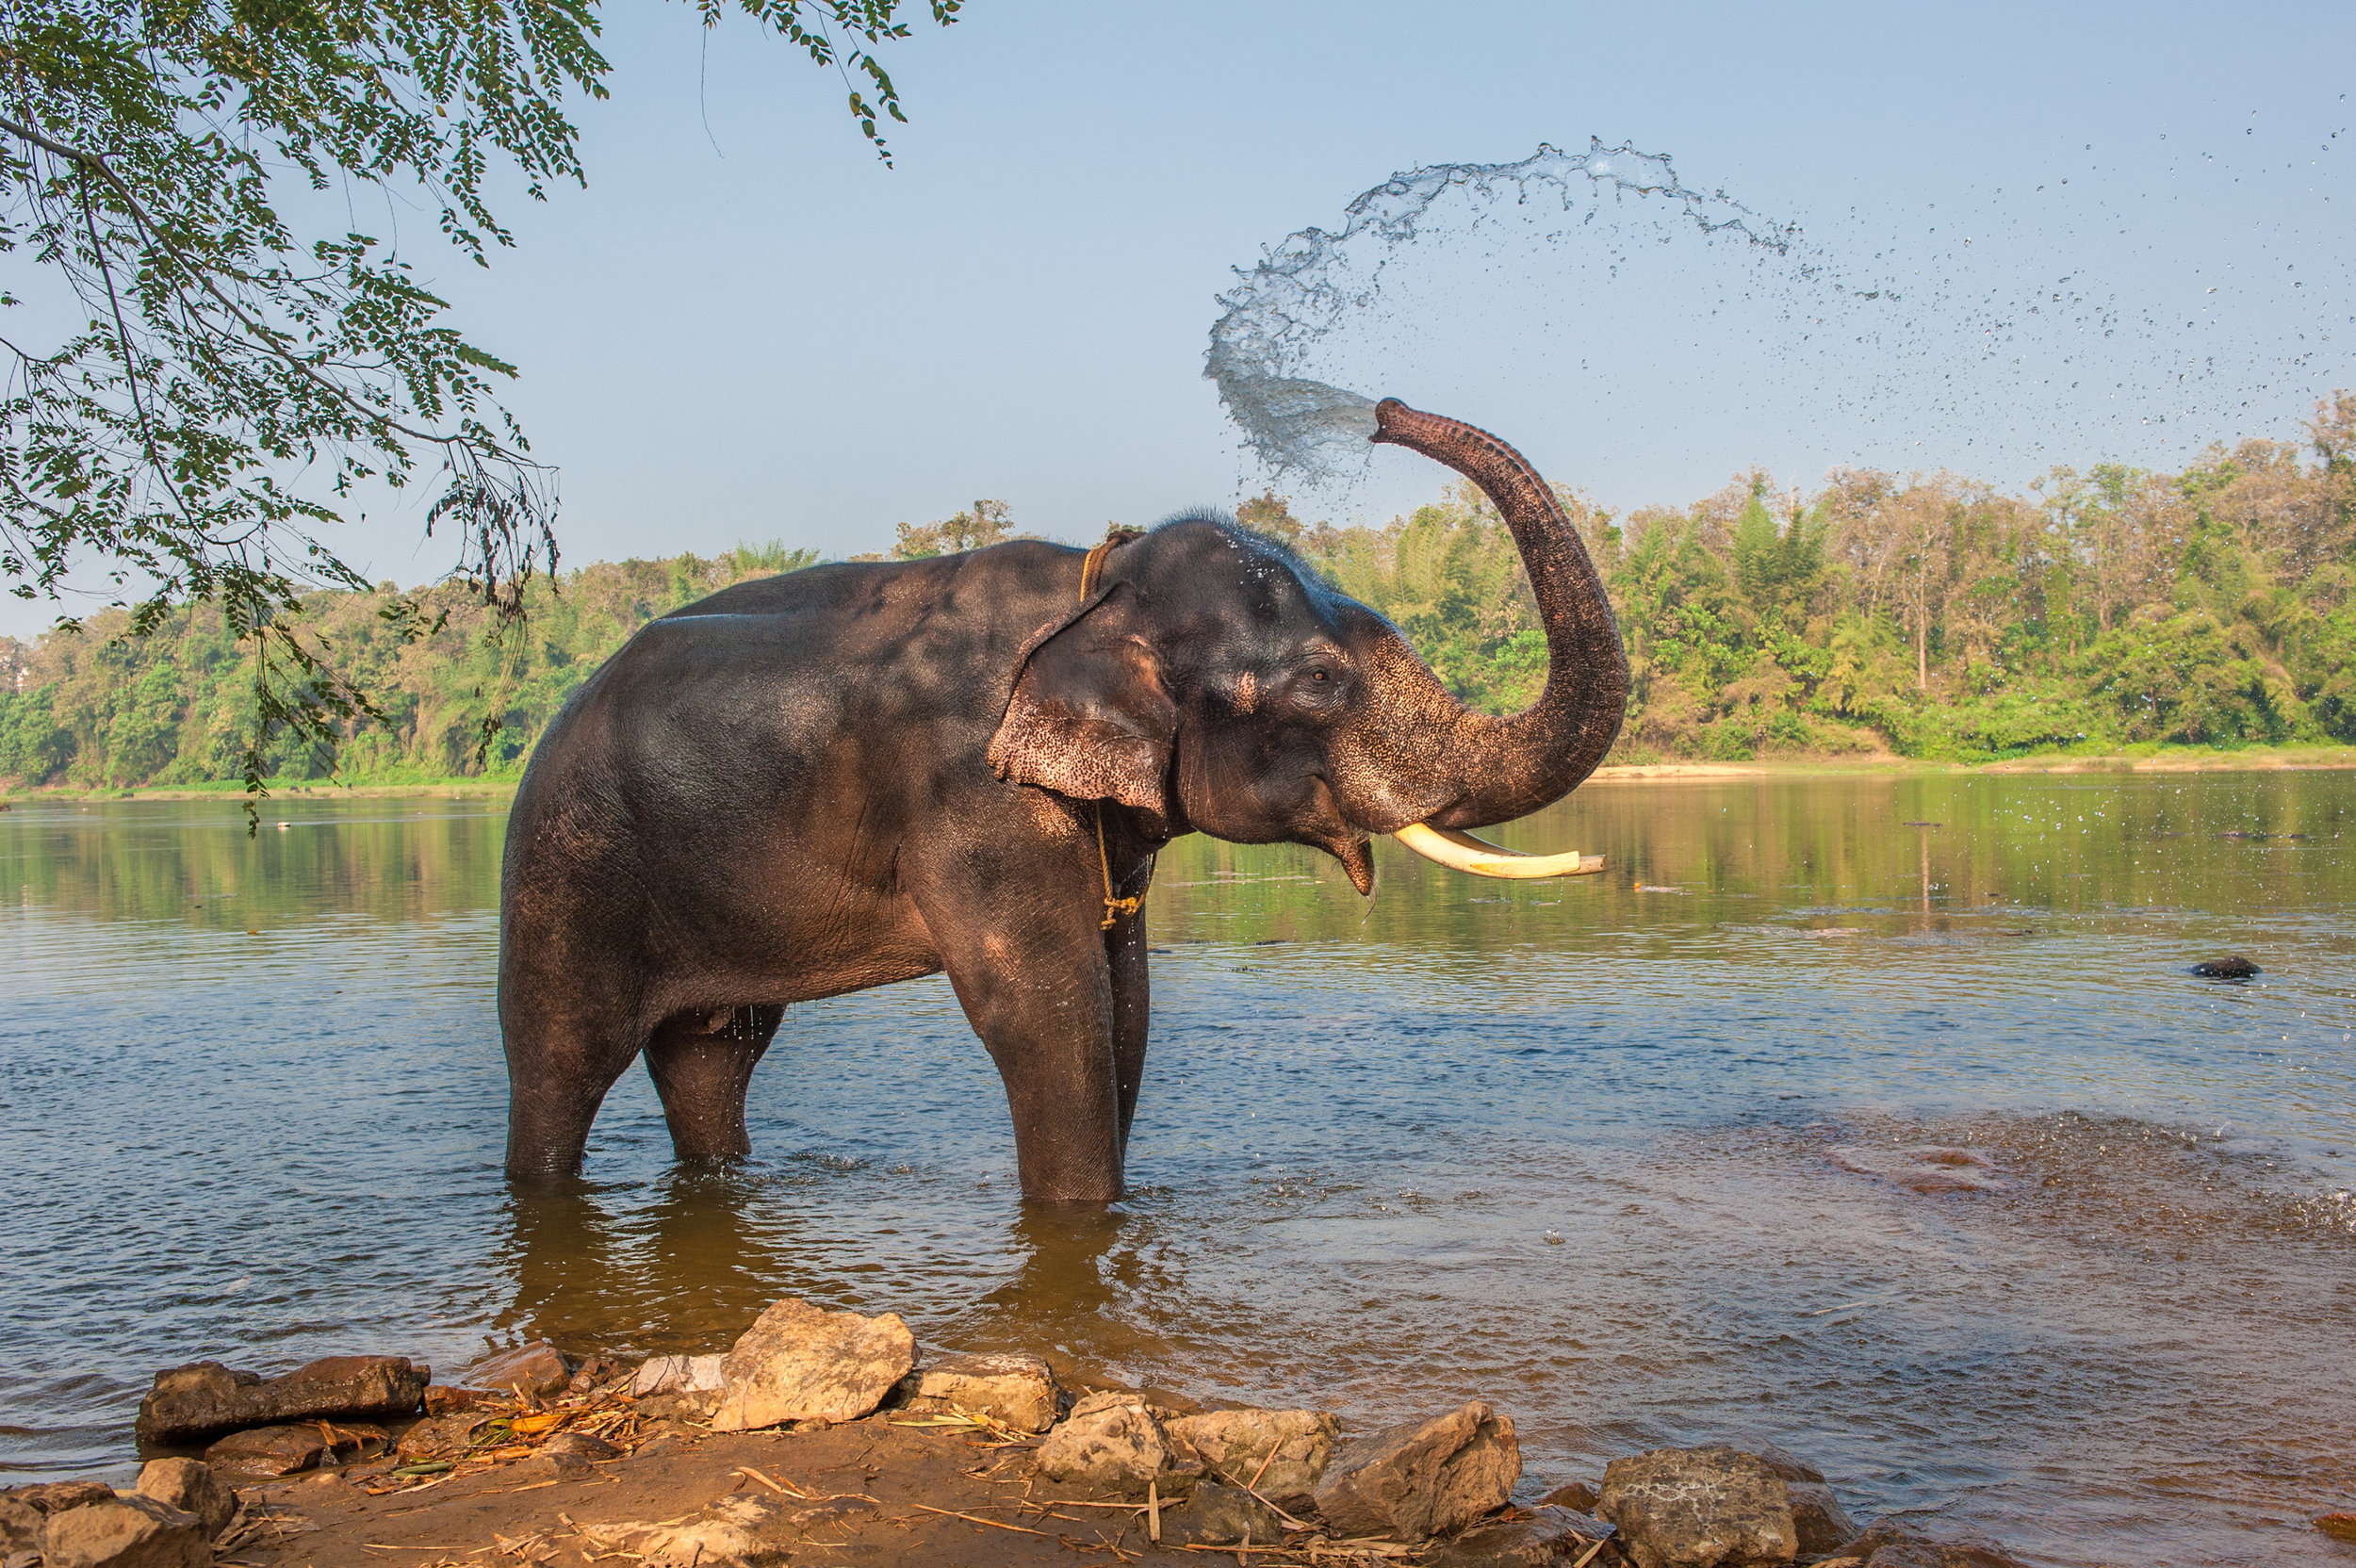 Washing-with-the-elephants-in-India.jpg